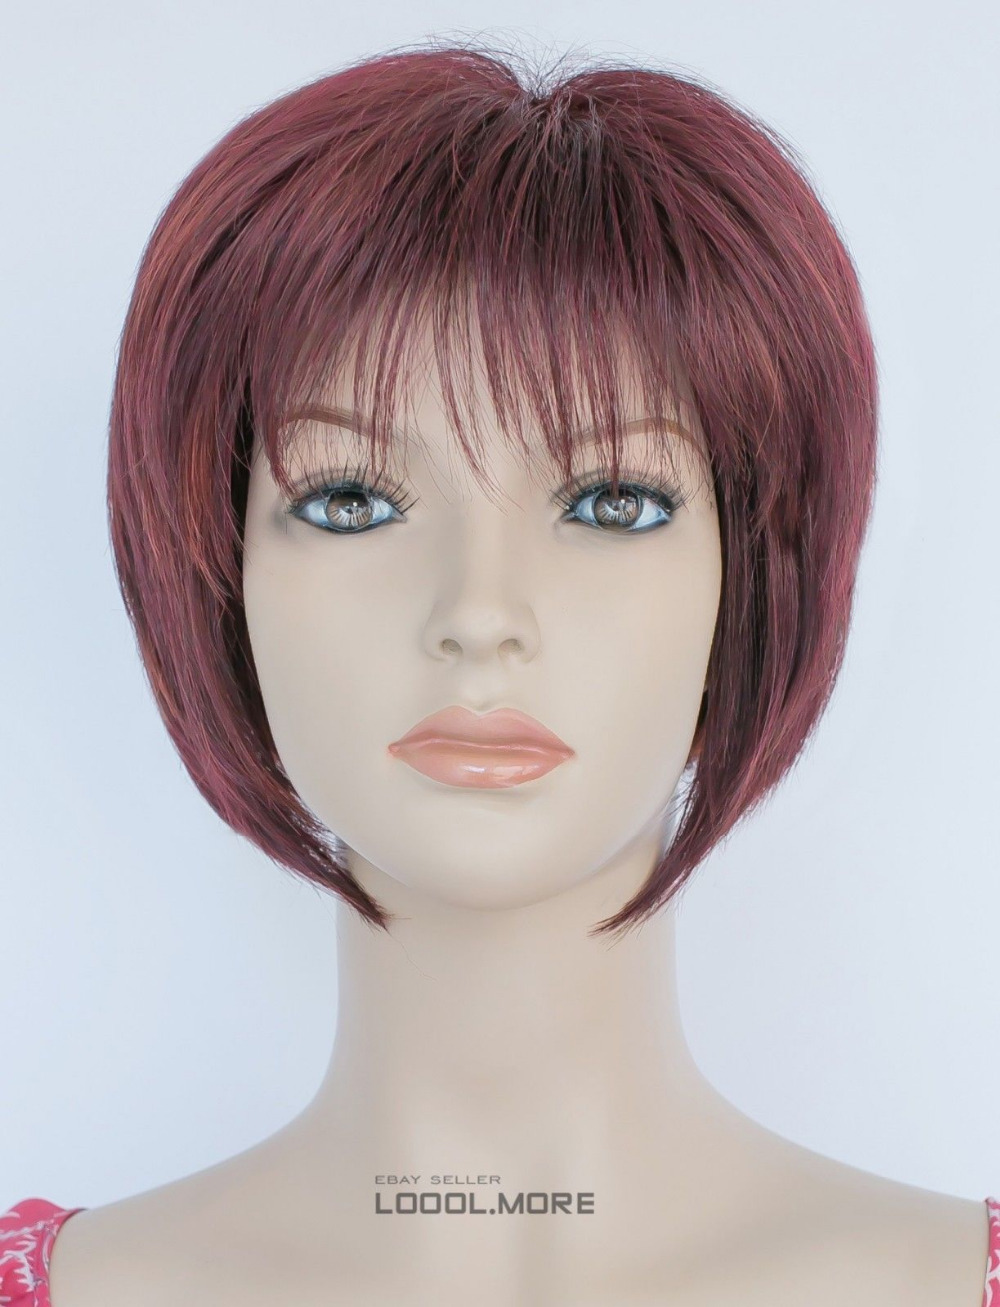 GOOD Express delivery to USA BOB Burgundy wine-red Mixed Short Women Daily Hivision Synthetic Wig s1025(China (Mainland))